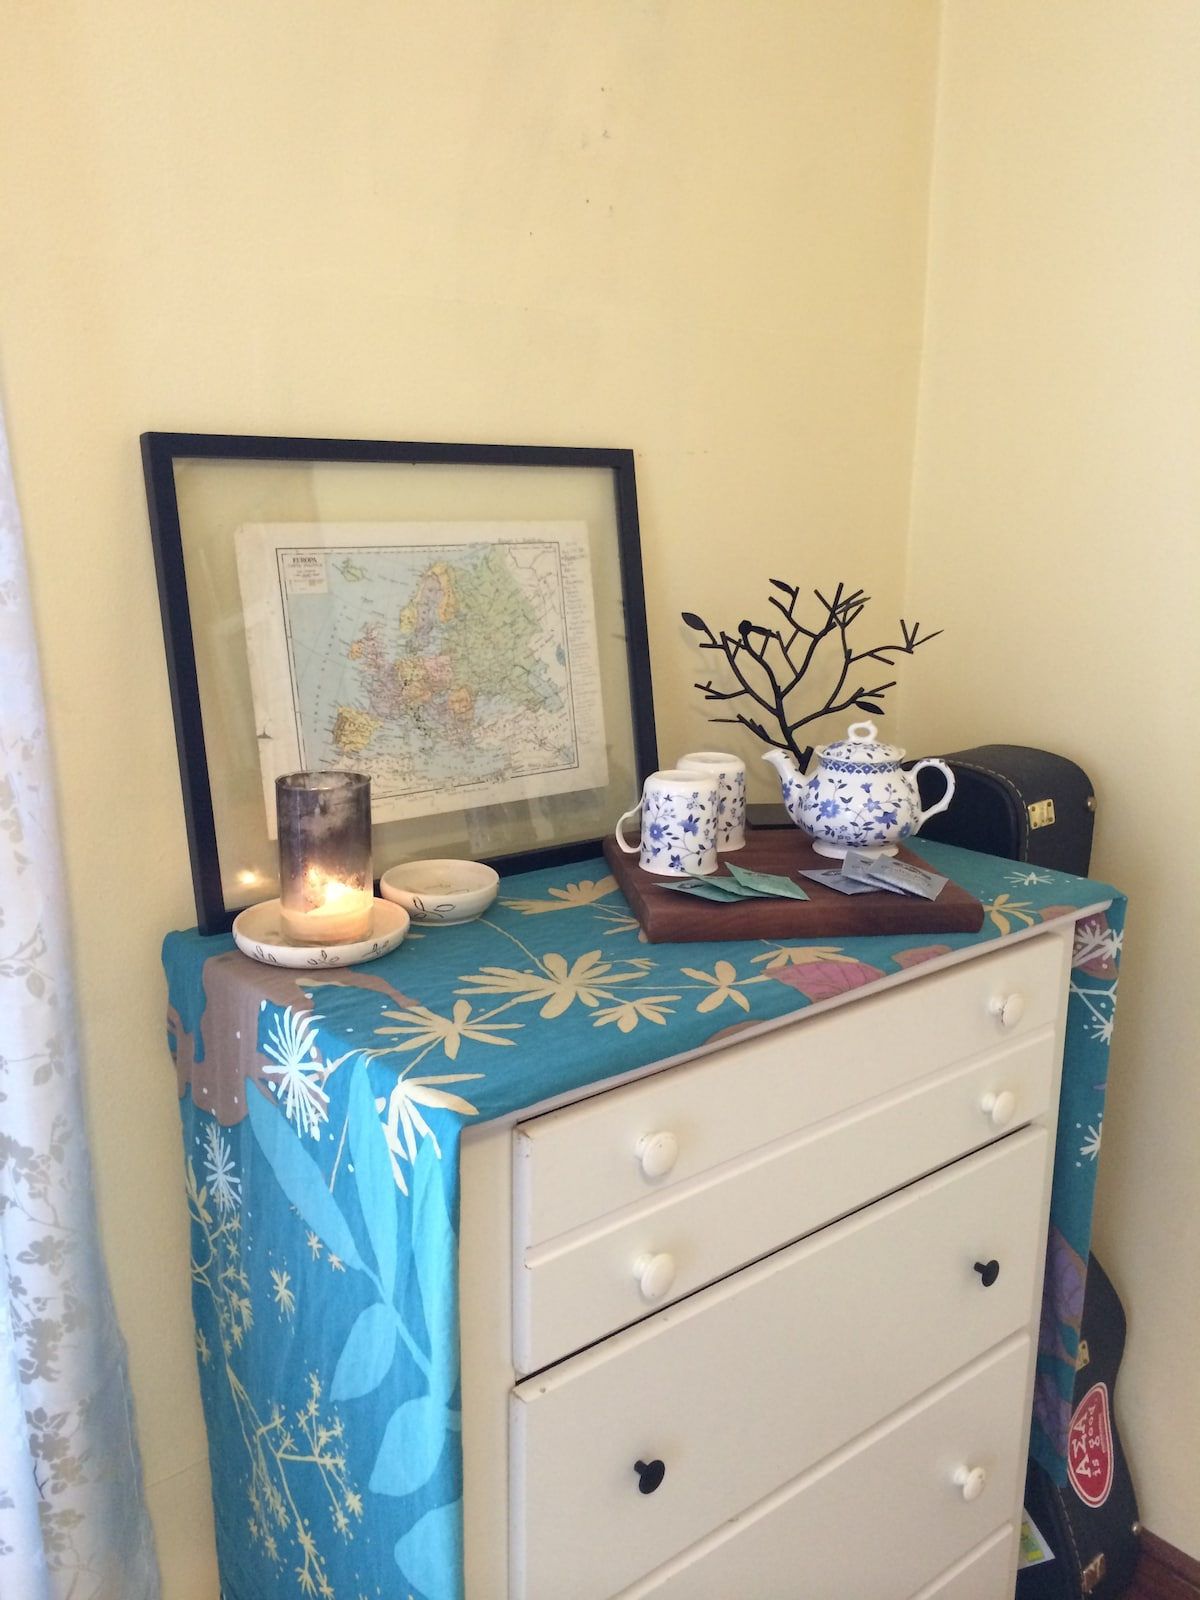 Like any great BnB, you will be able to enjoy a warm cup of tea and embrace the moment.